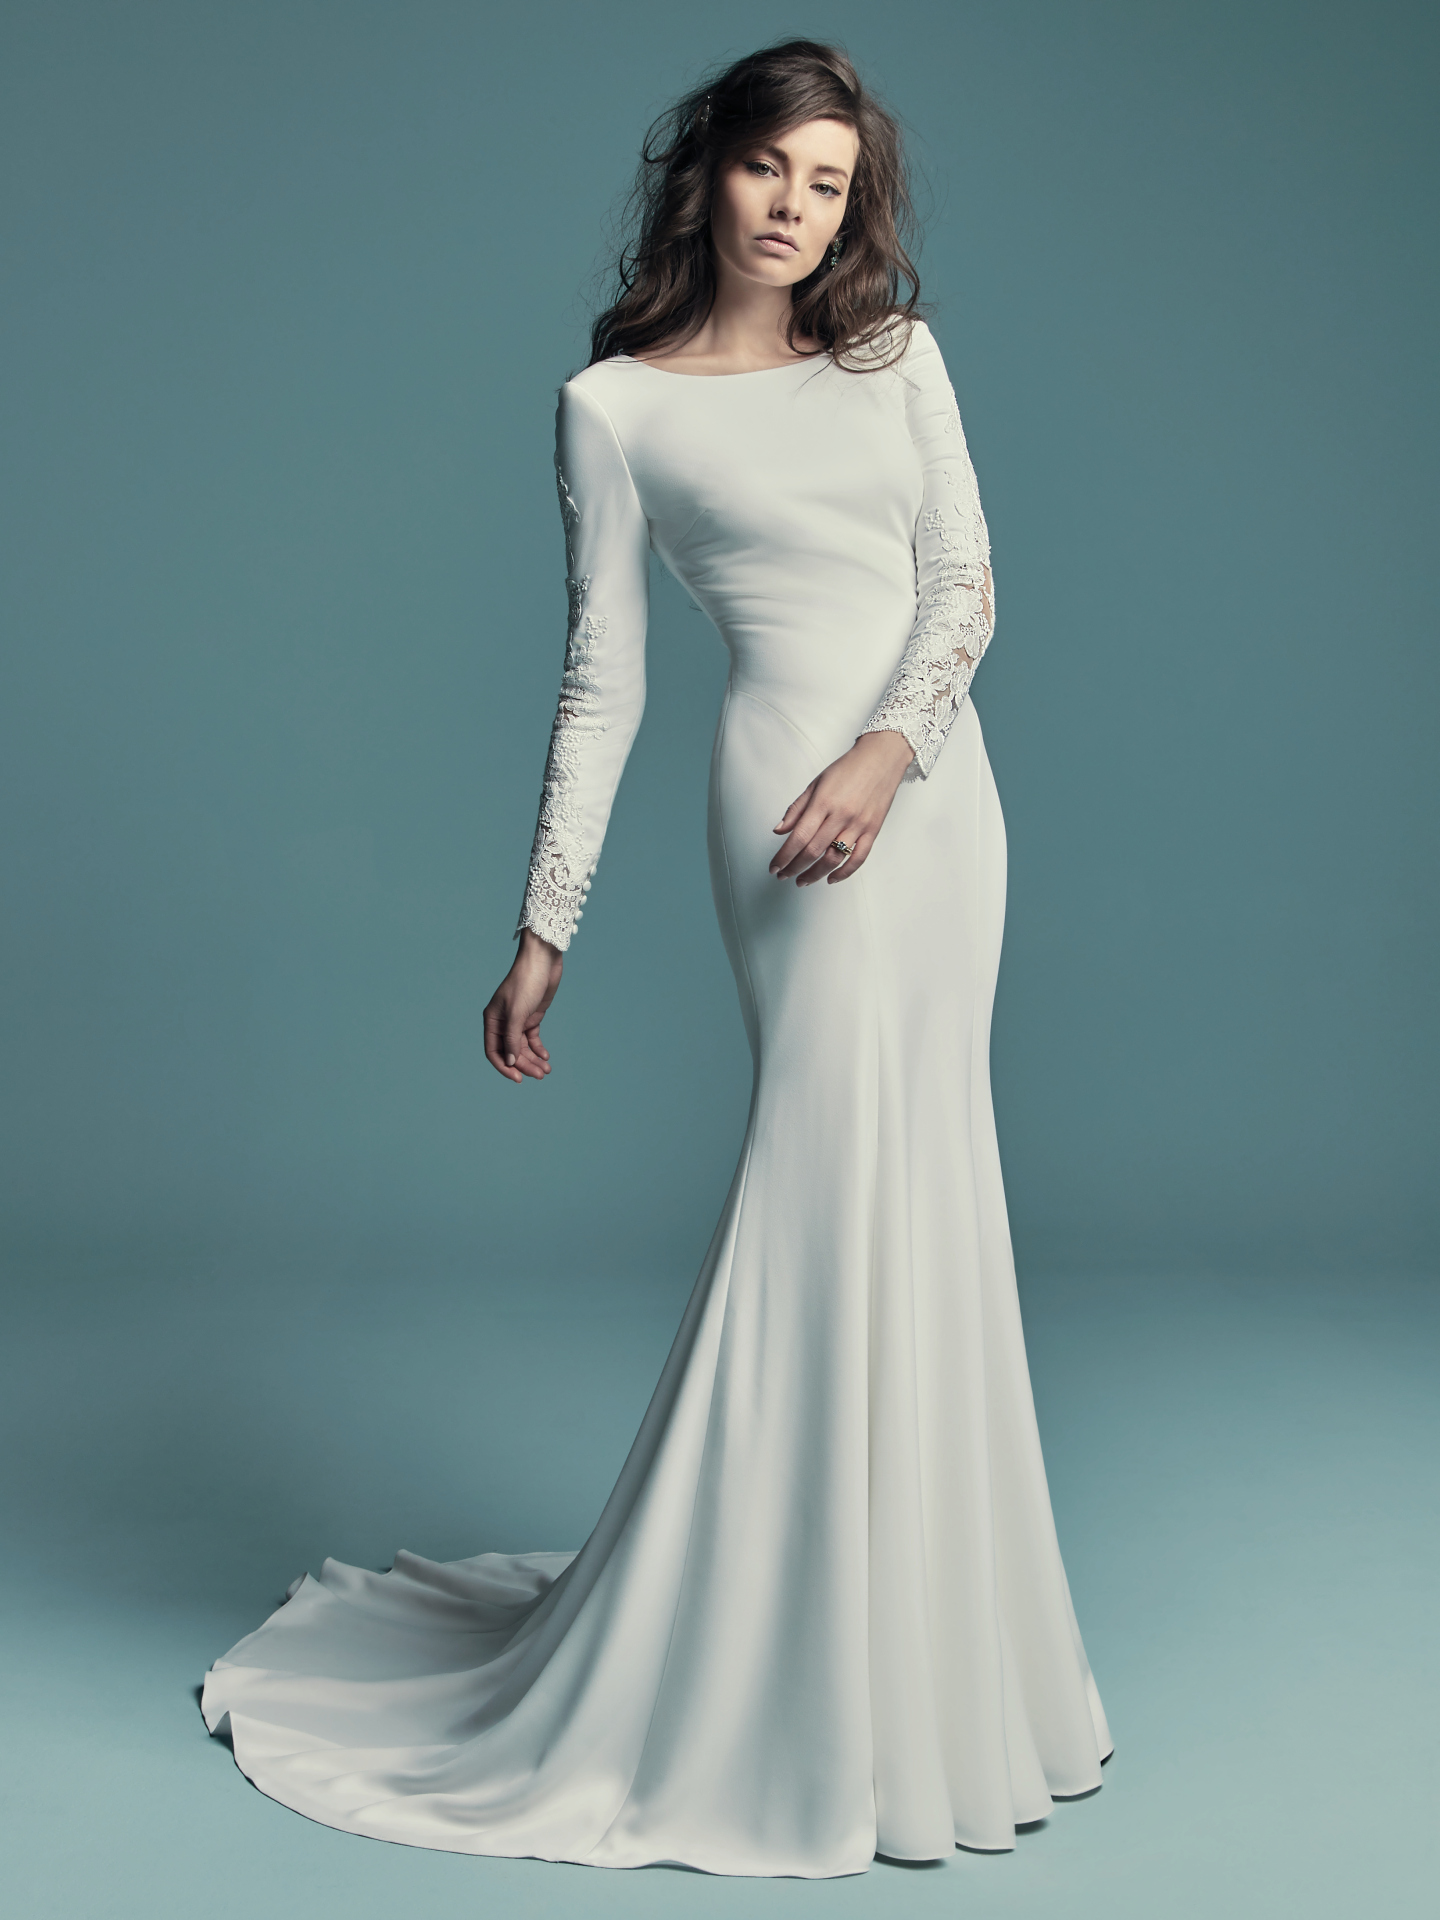 Favorite Sleeved Wedding dresses - Simple wedding dress Olyssia by Maggie Sottero